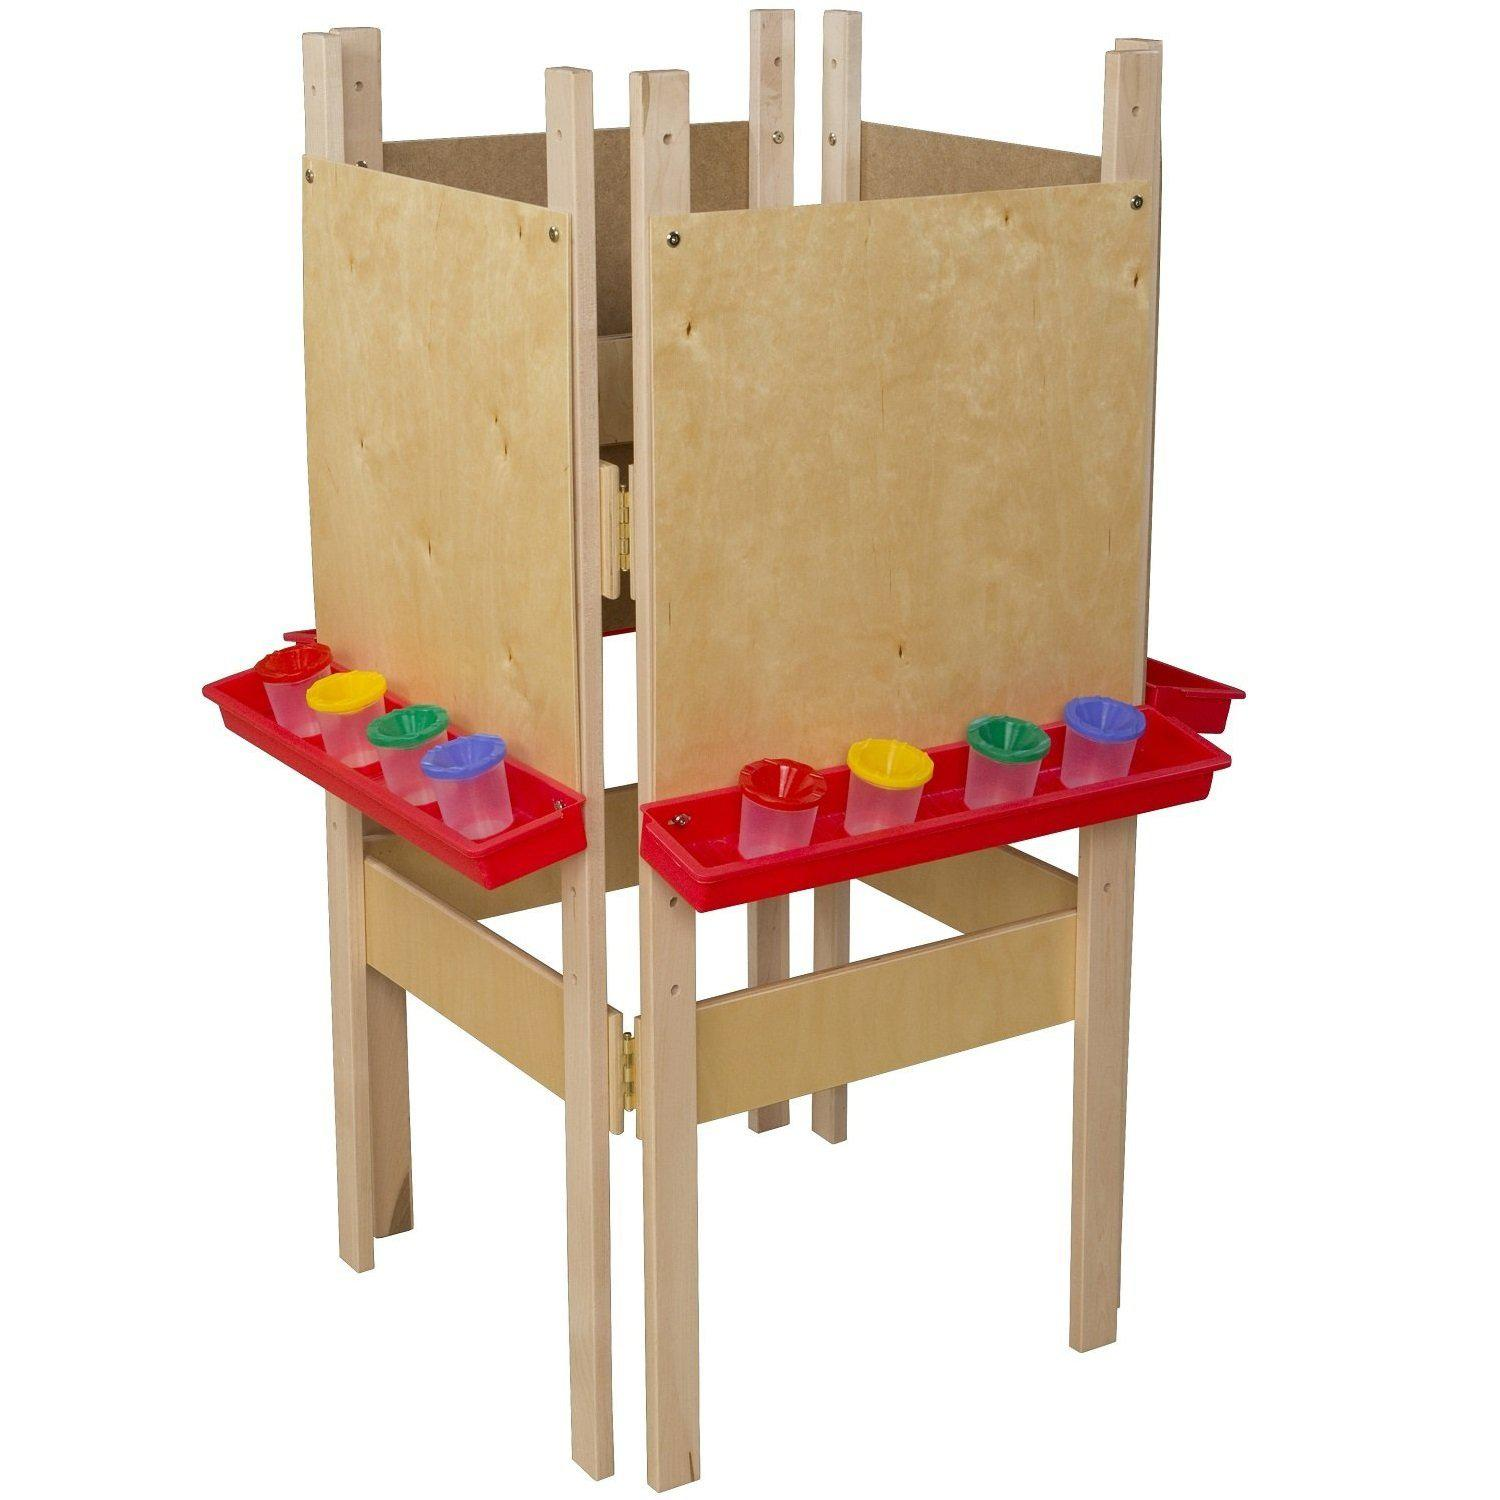 Wood Designs 4-Sided Adjustable Easel